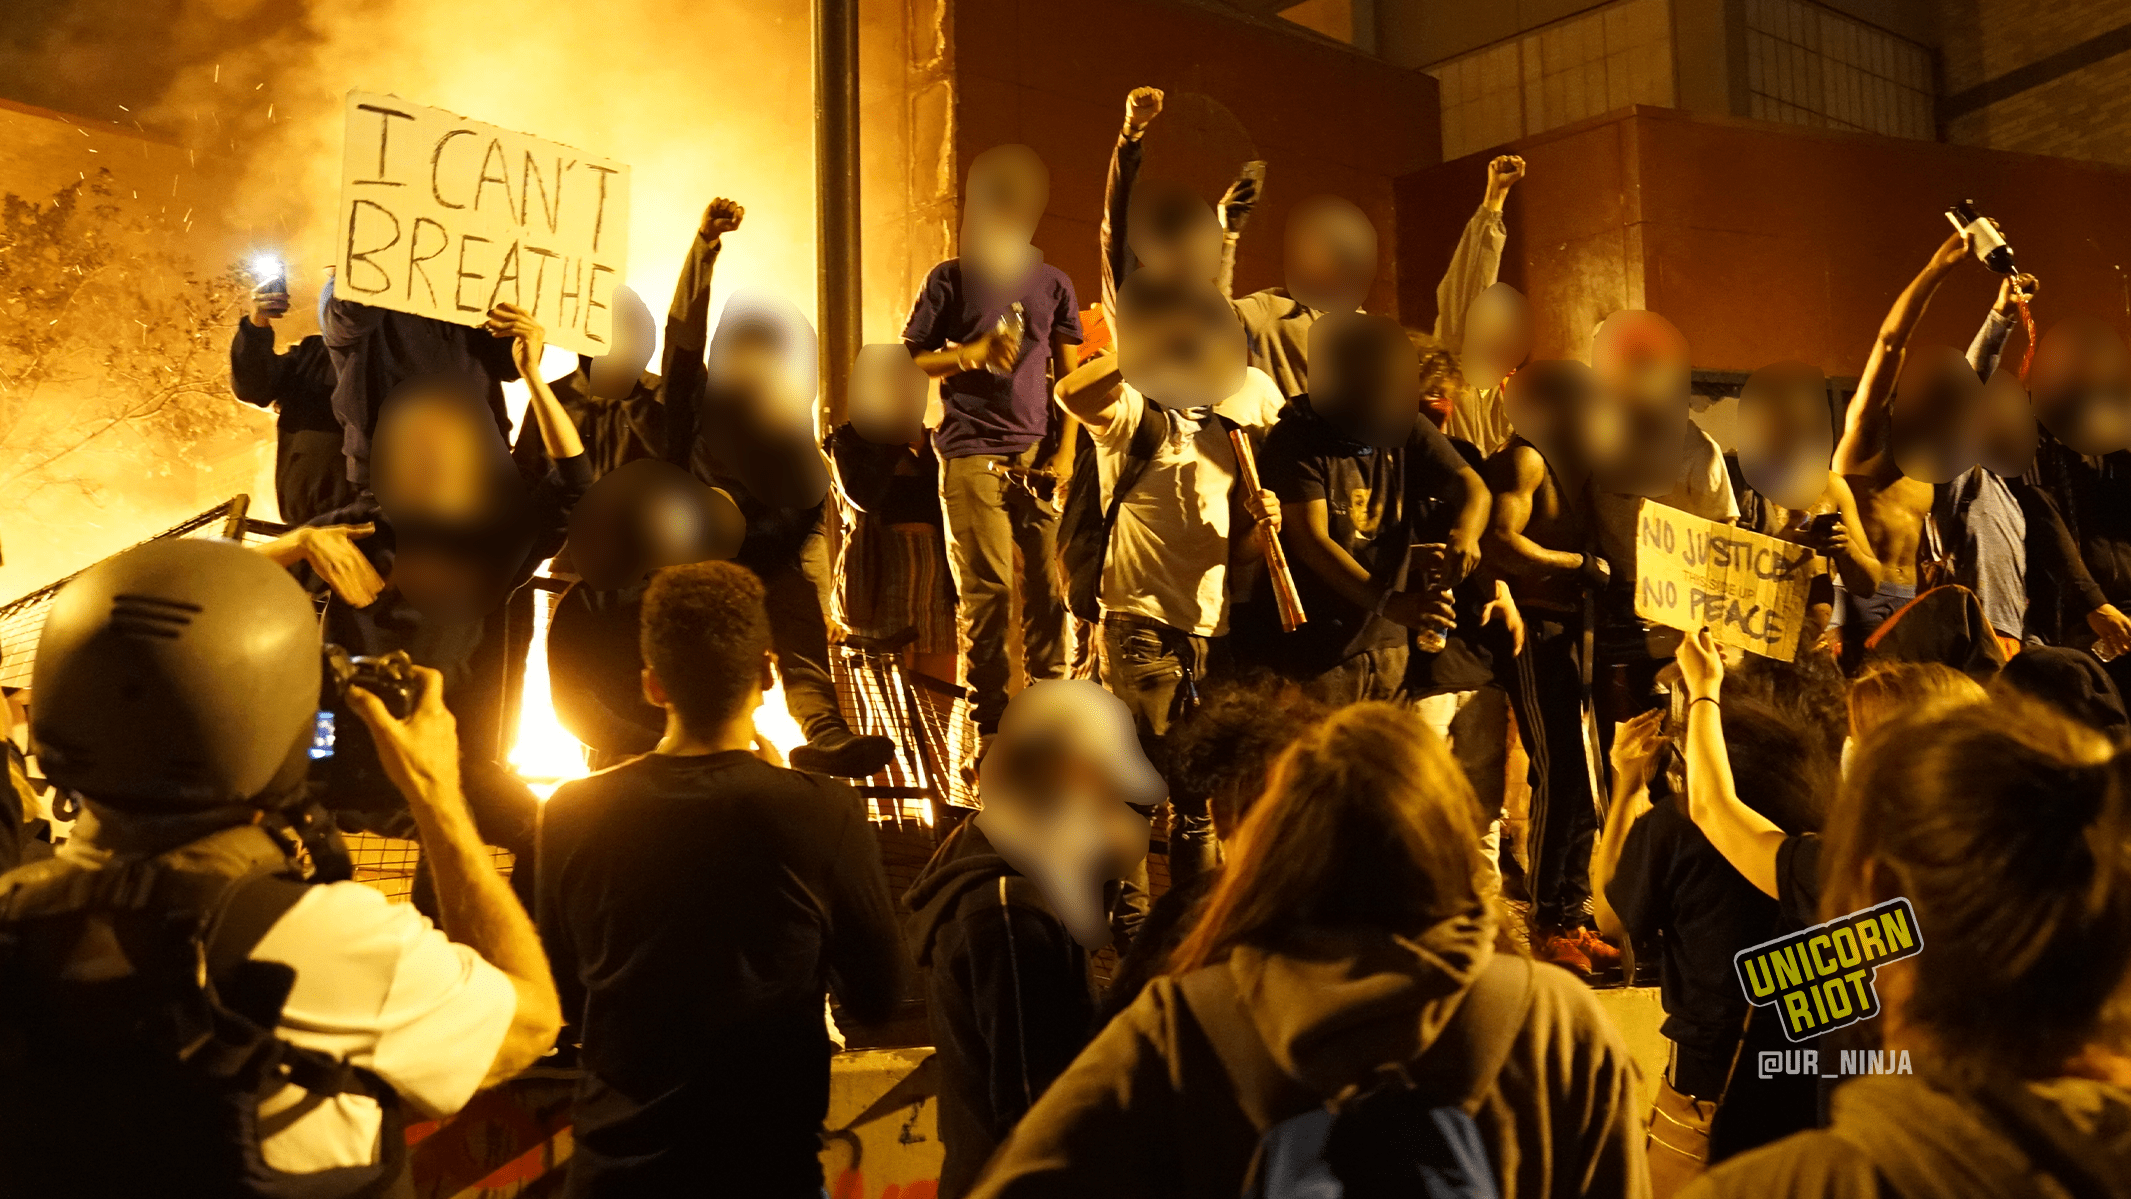 image: dozens of protesters raise their fists as first burn behind them on the grounds of the 3rd precinct. Photo taken at midnight on May 29, 2020